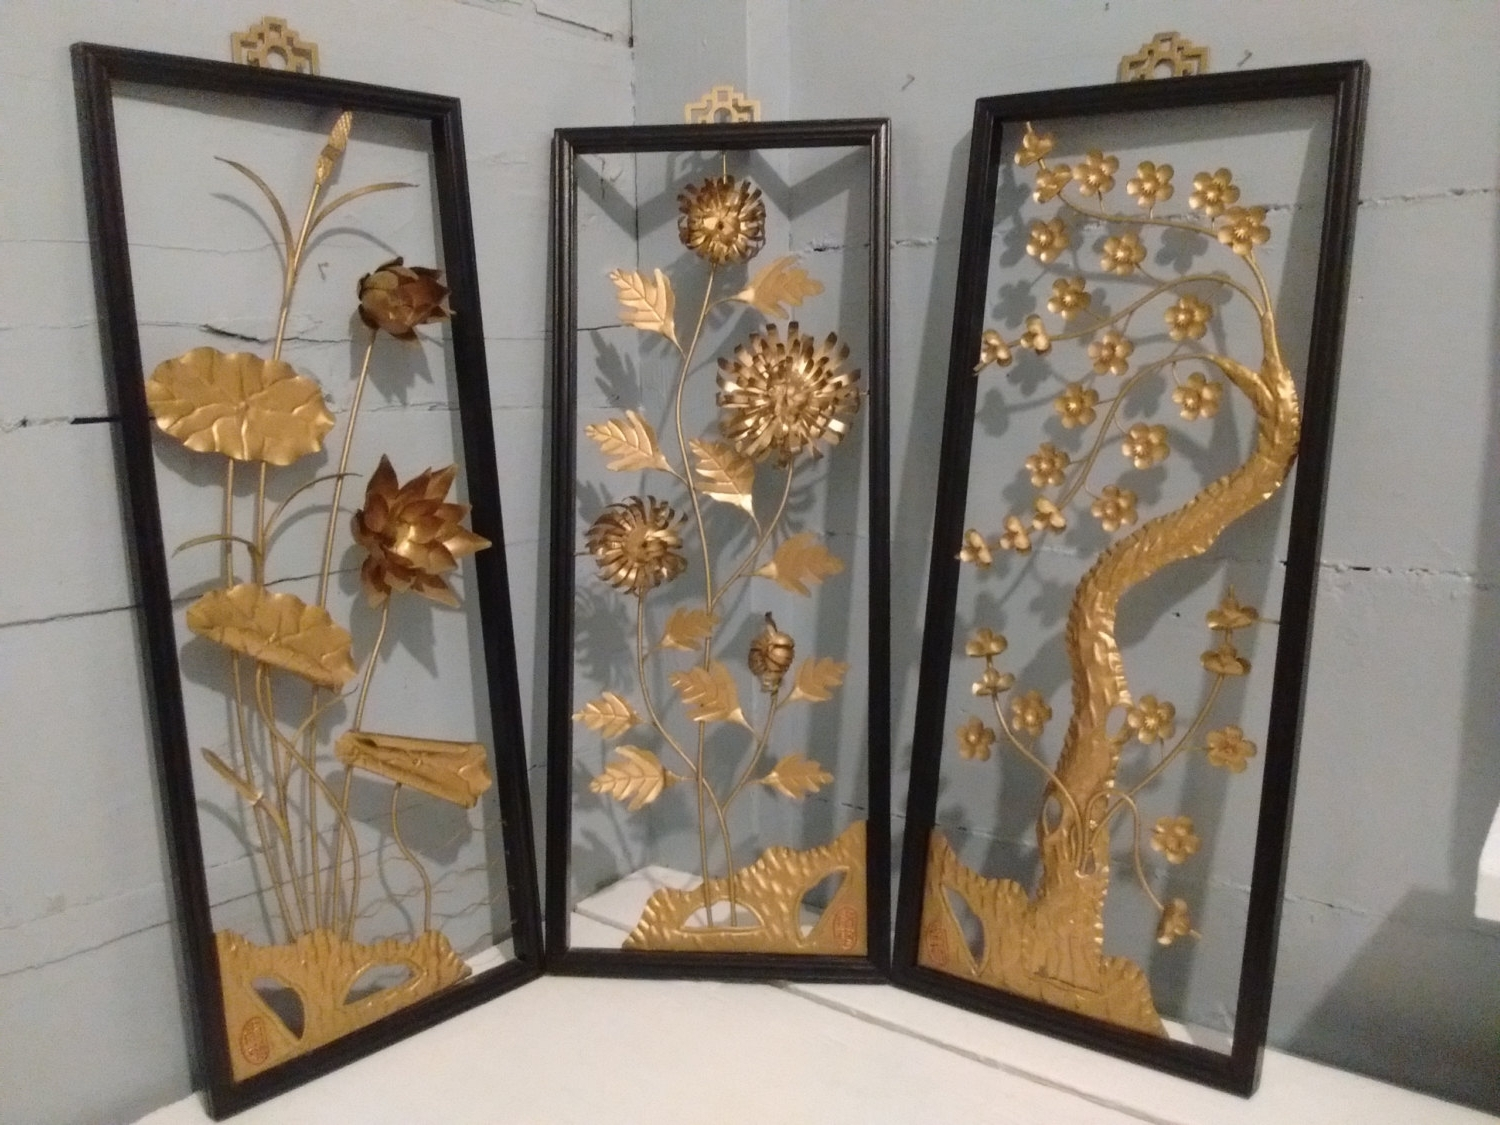 Art, Floral, Framed, 3D, Wall Art, Metal, Sculpture, Set Of 3, Mid For Best And Newest Framed 3D Wall Art (View 3 of 15)